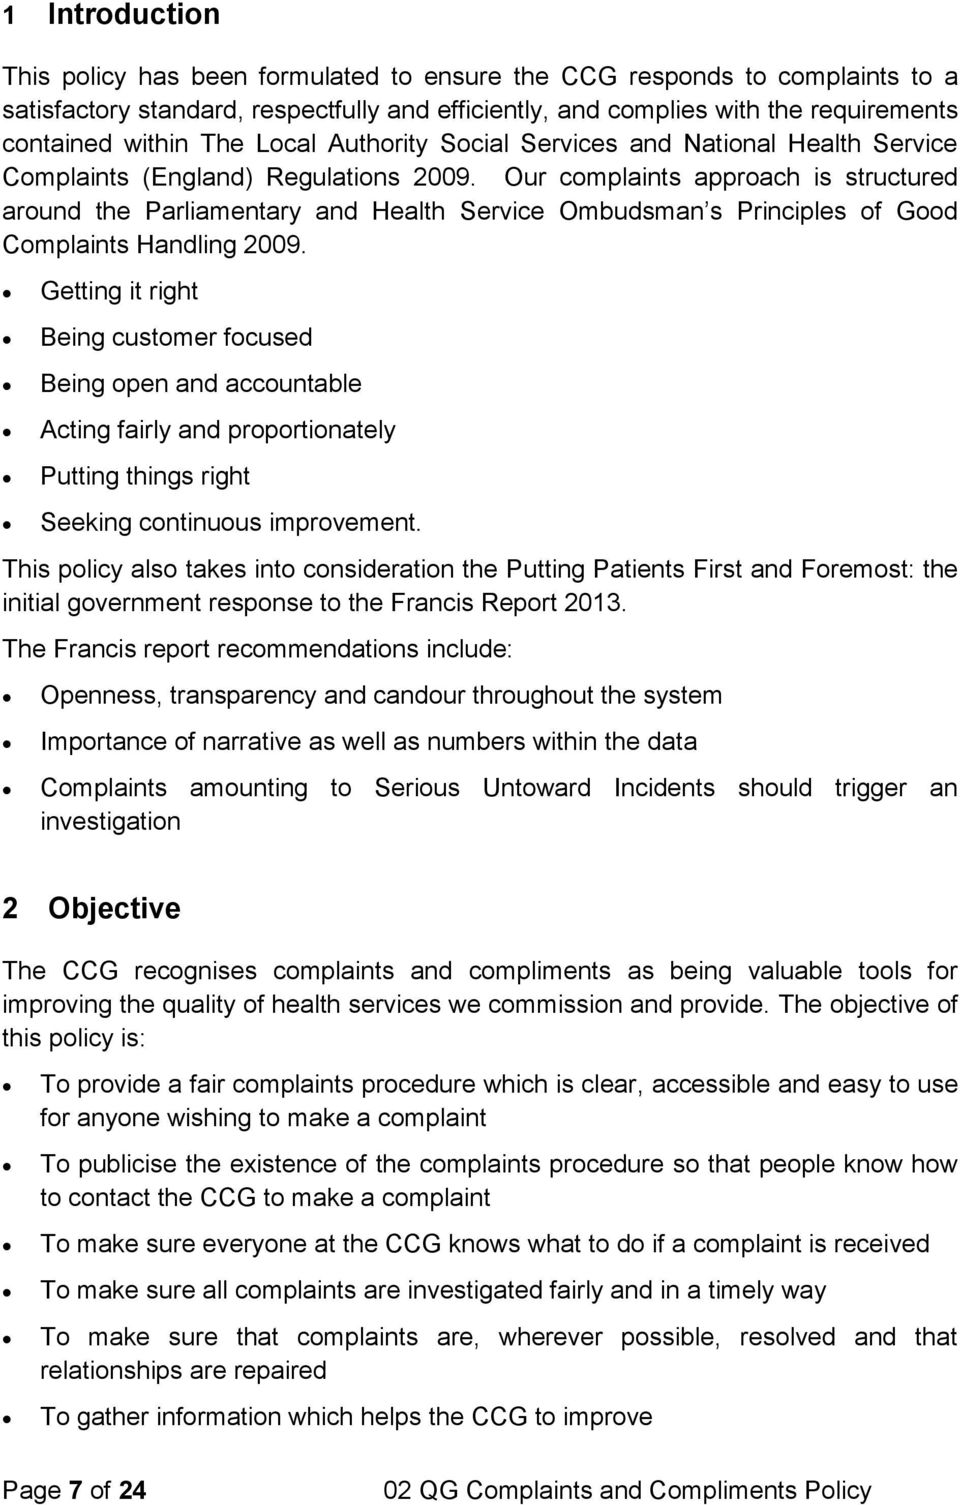 Our complaints approach is structured around the Parliamentary and Health Service Ombudsman s Principles of Good Complaints Handling 2009.